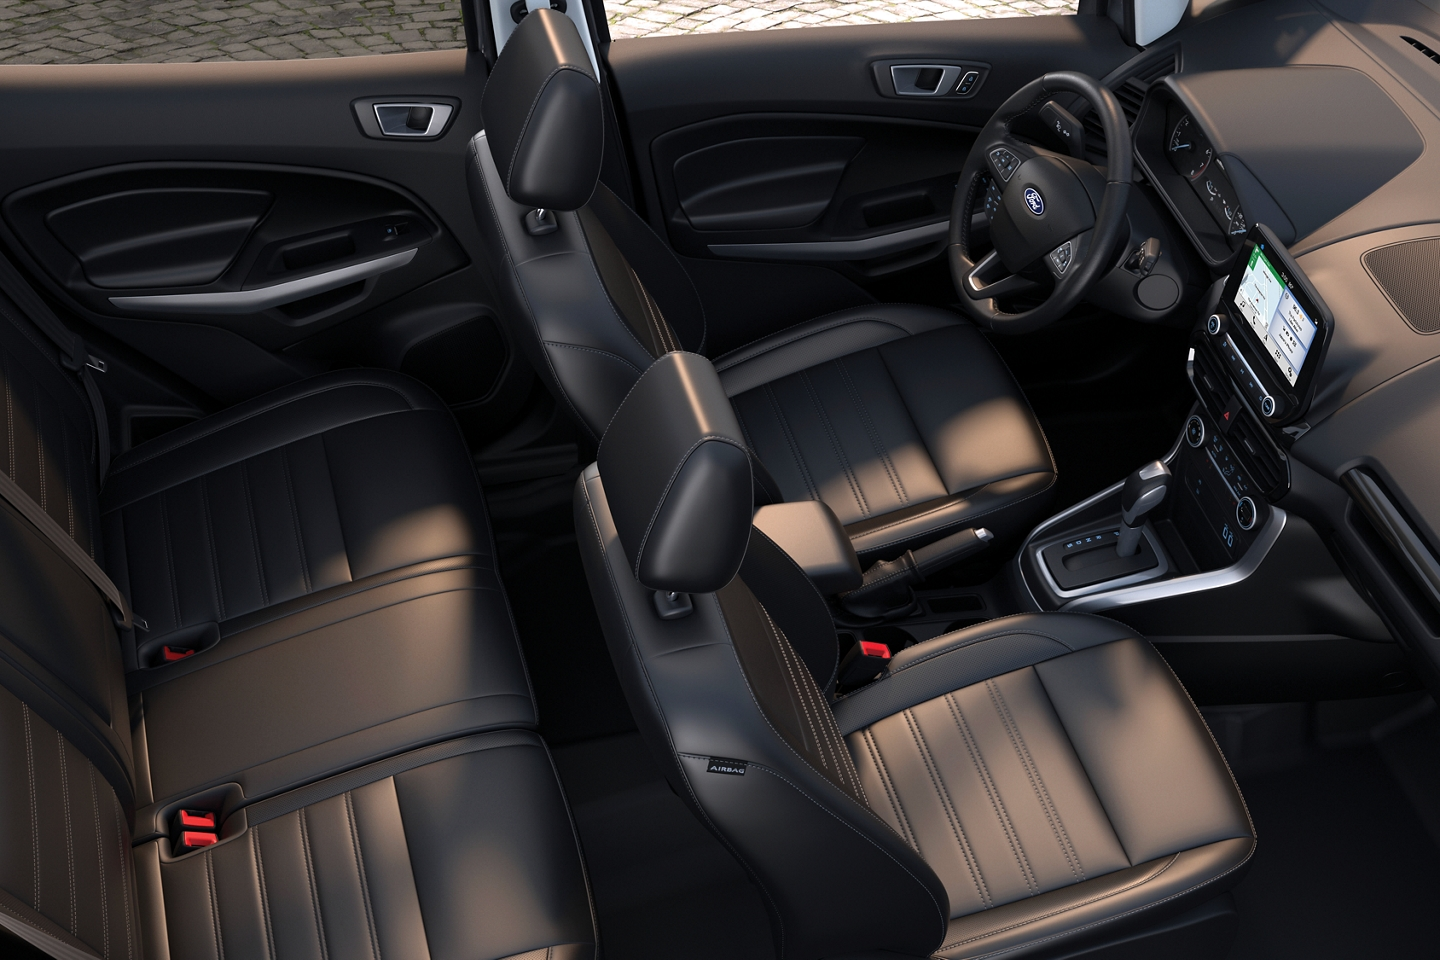 Overhead view of the 2019 EcoSport interior in Ebony